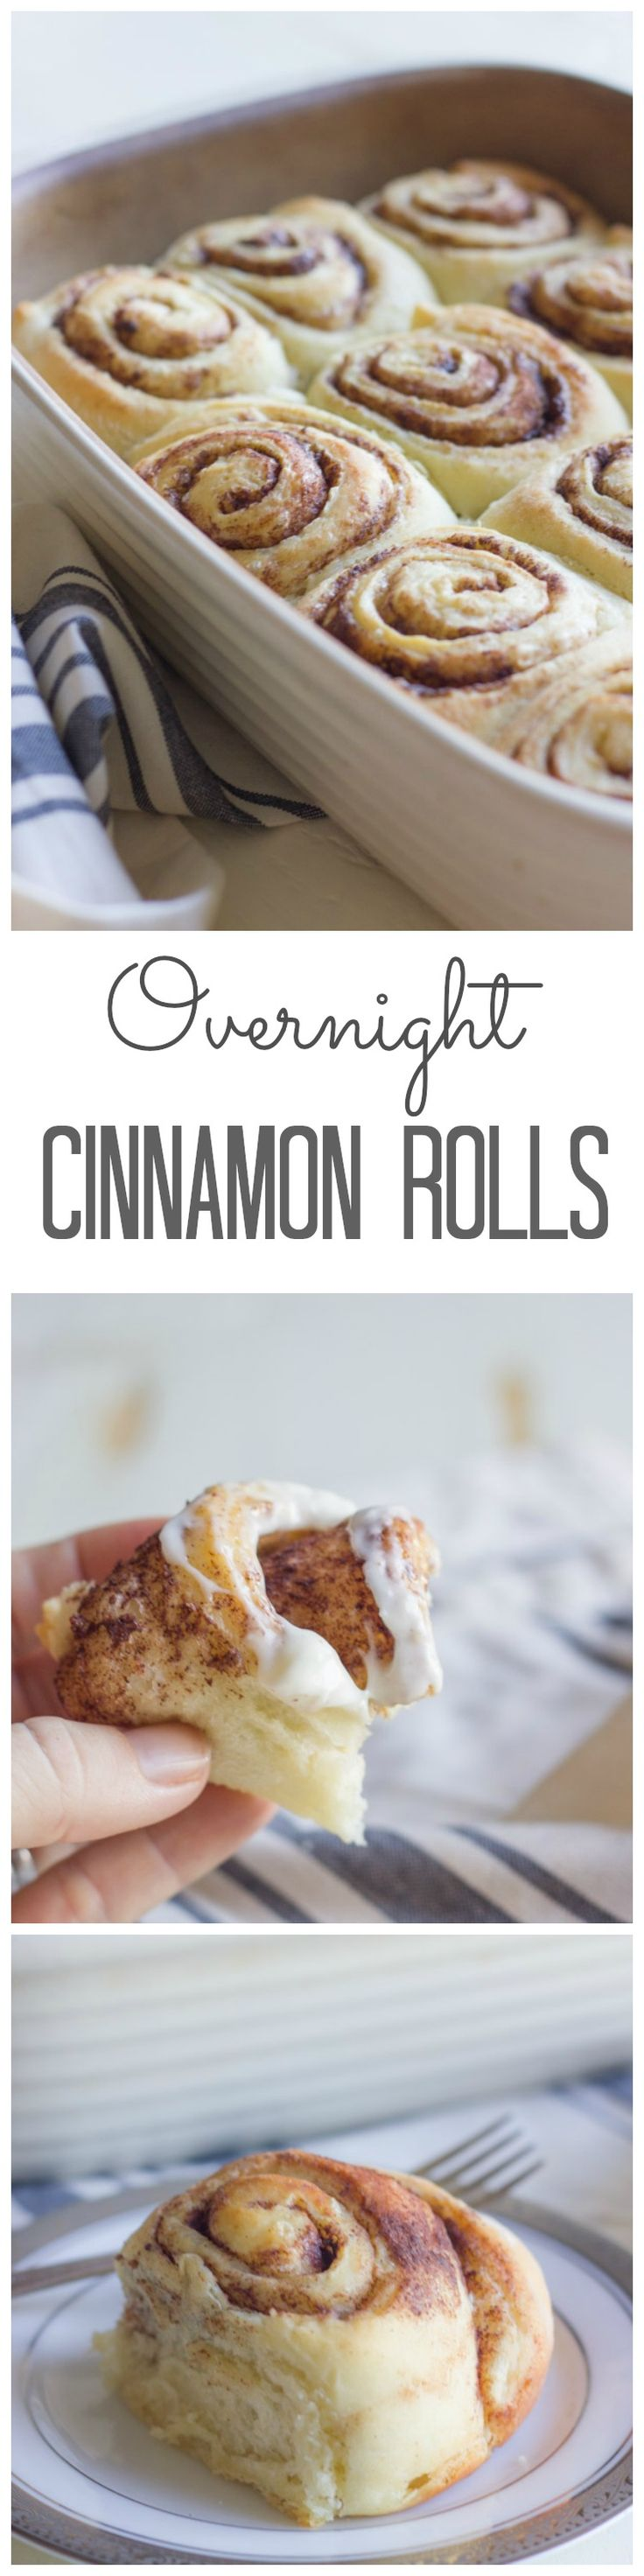 overnight cinnamon rolls - these were amazing. My house smelled like cinnabon for hours.